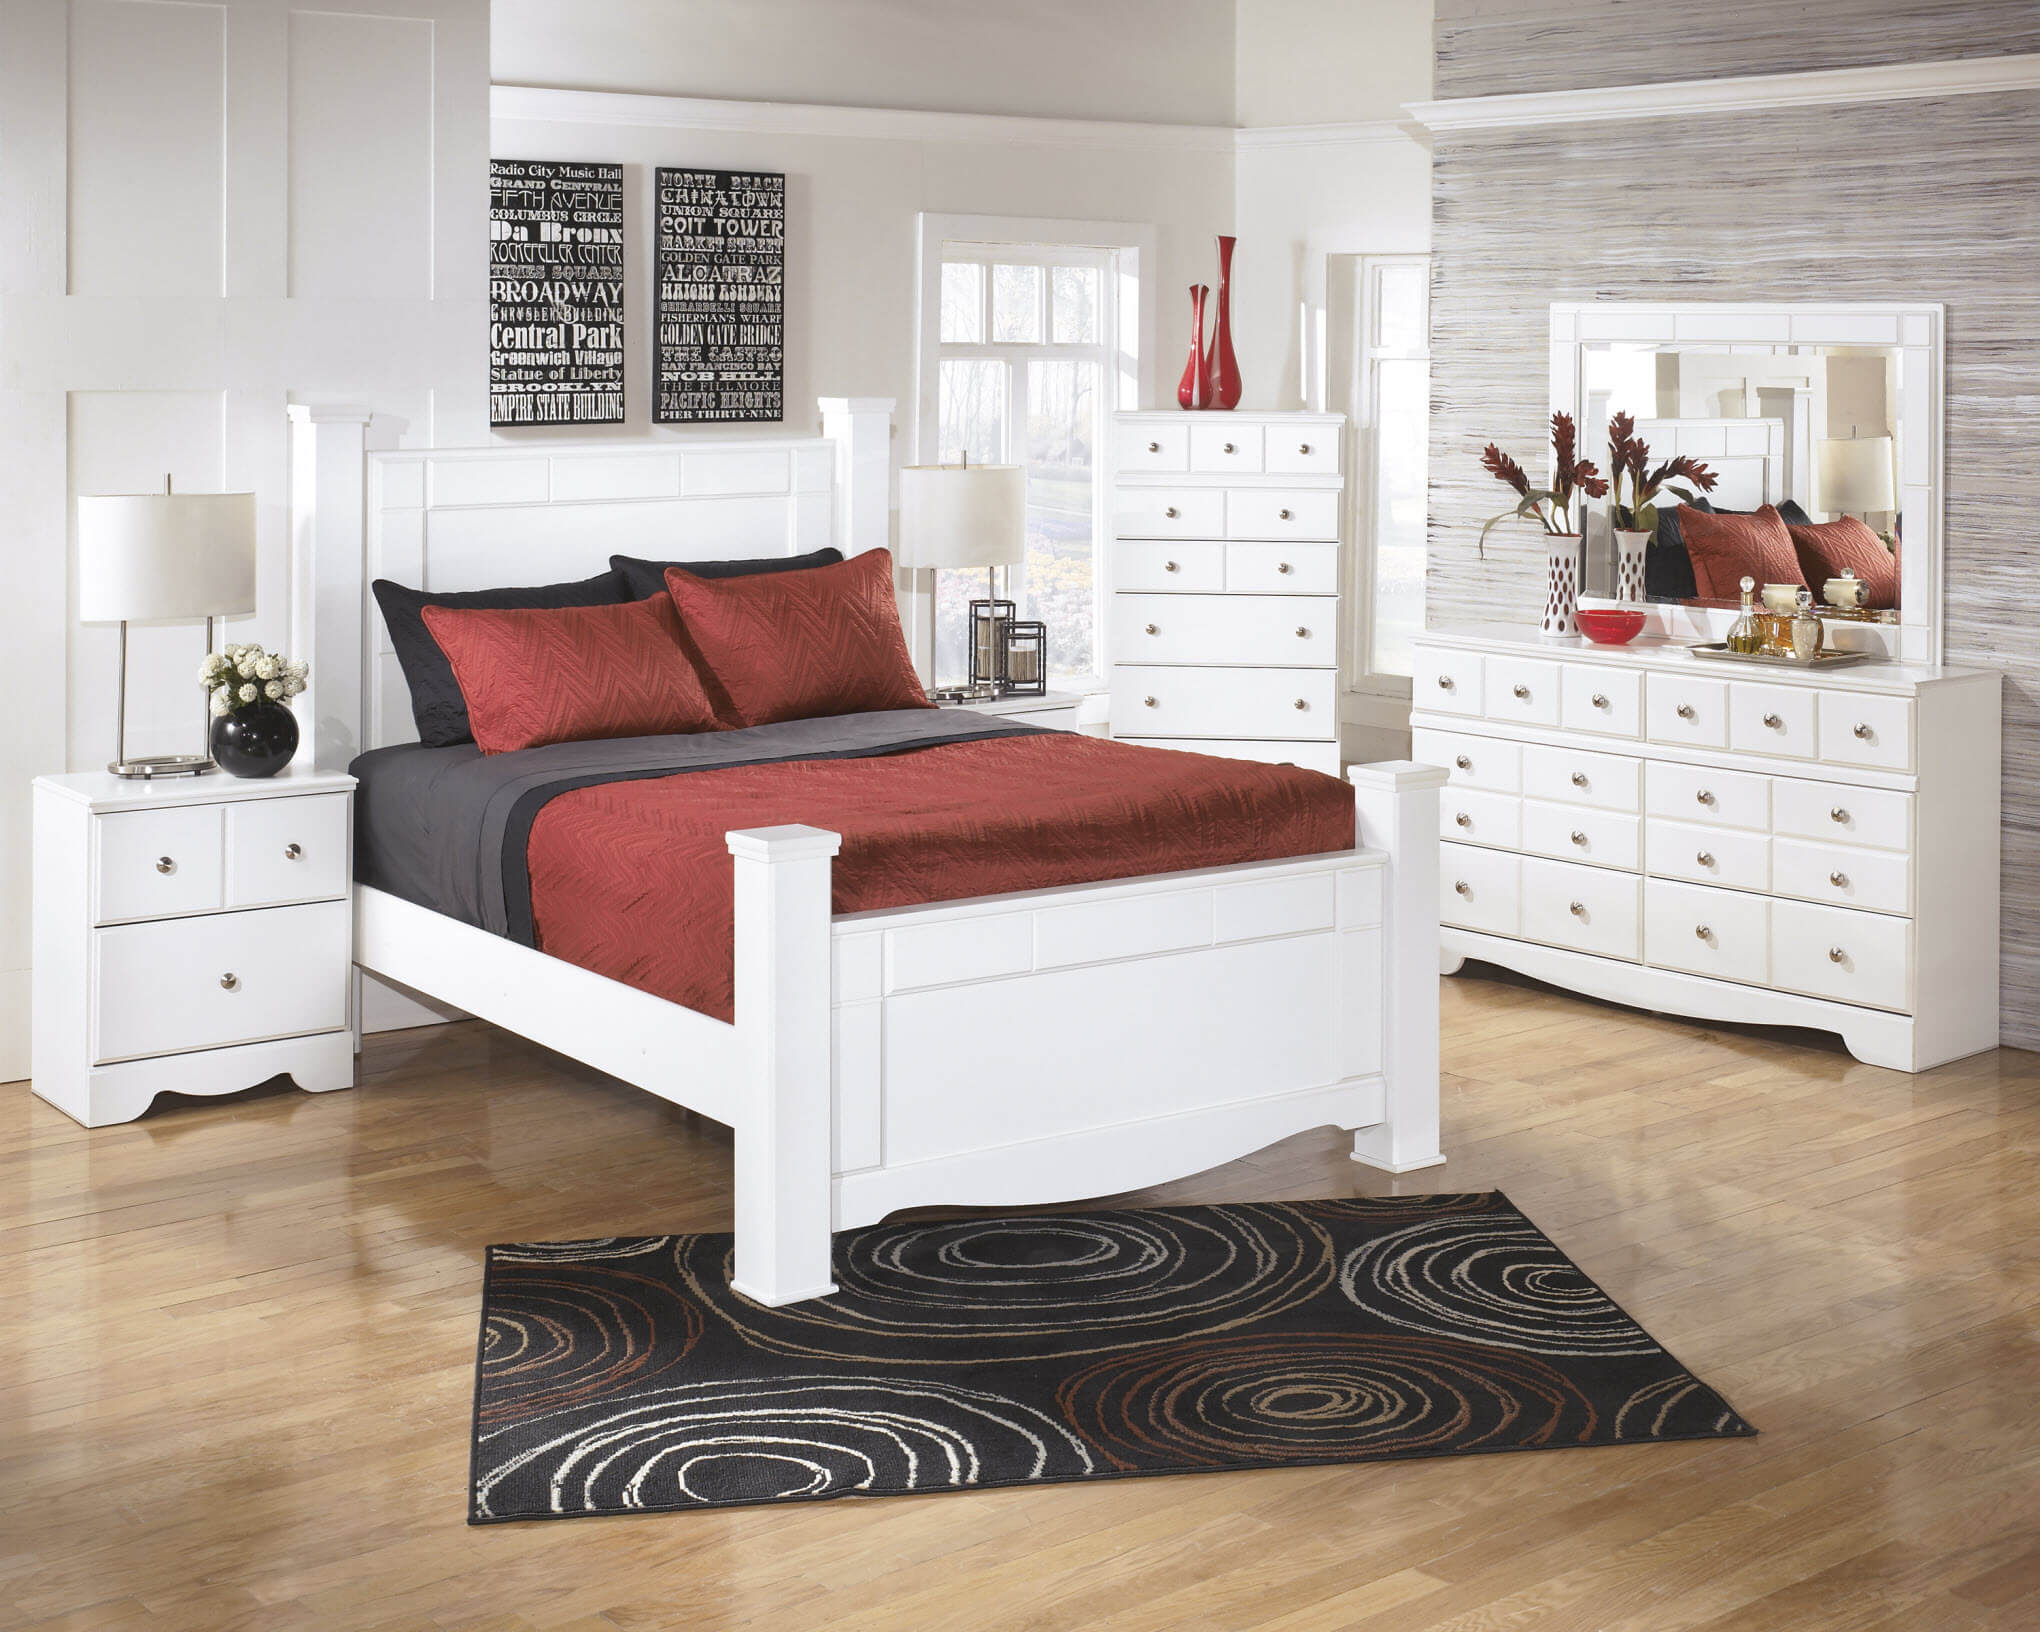 Weeki ashley bedroom set bedroom furniture sets - Ashley furniture bedroom packages ...